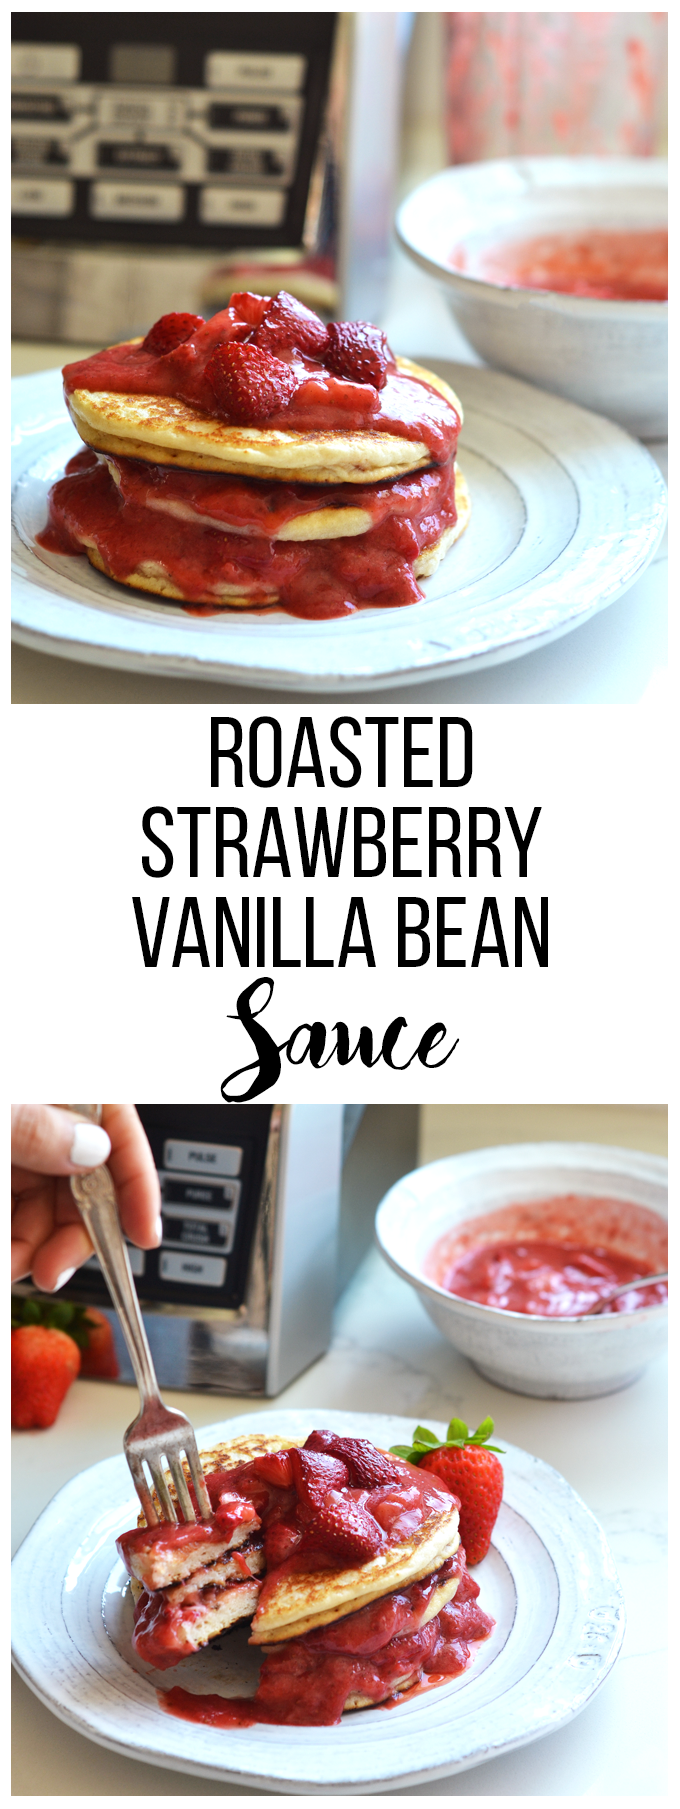 This Roasted Strawberry Vanilla Bean Sauce goes perfectly with these ...